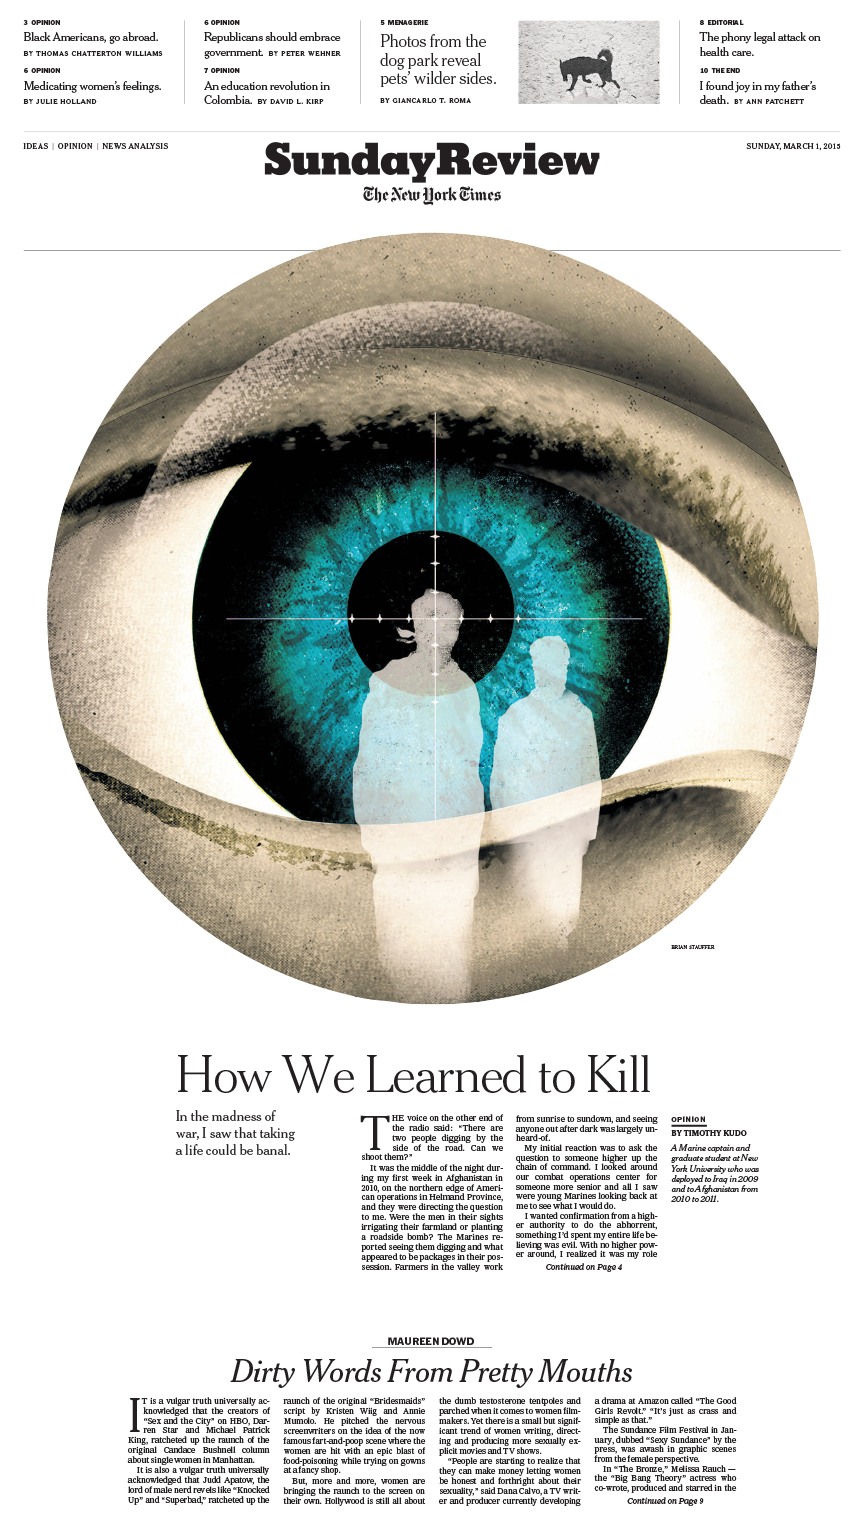 Sunday Review Cover: How We Learned To Kill